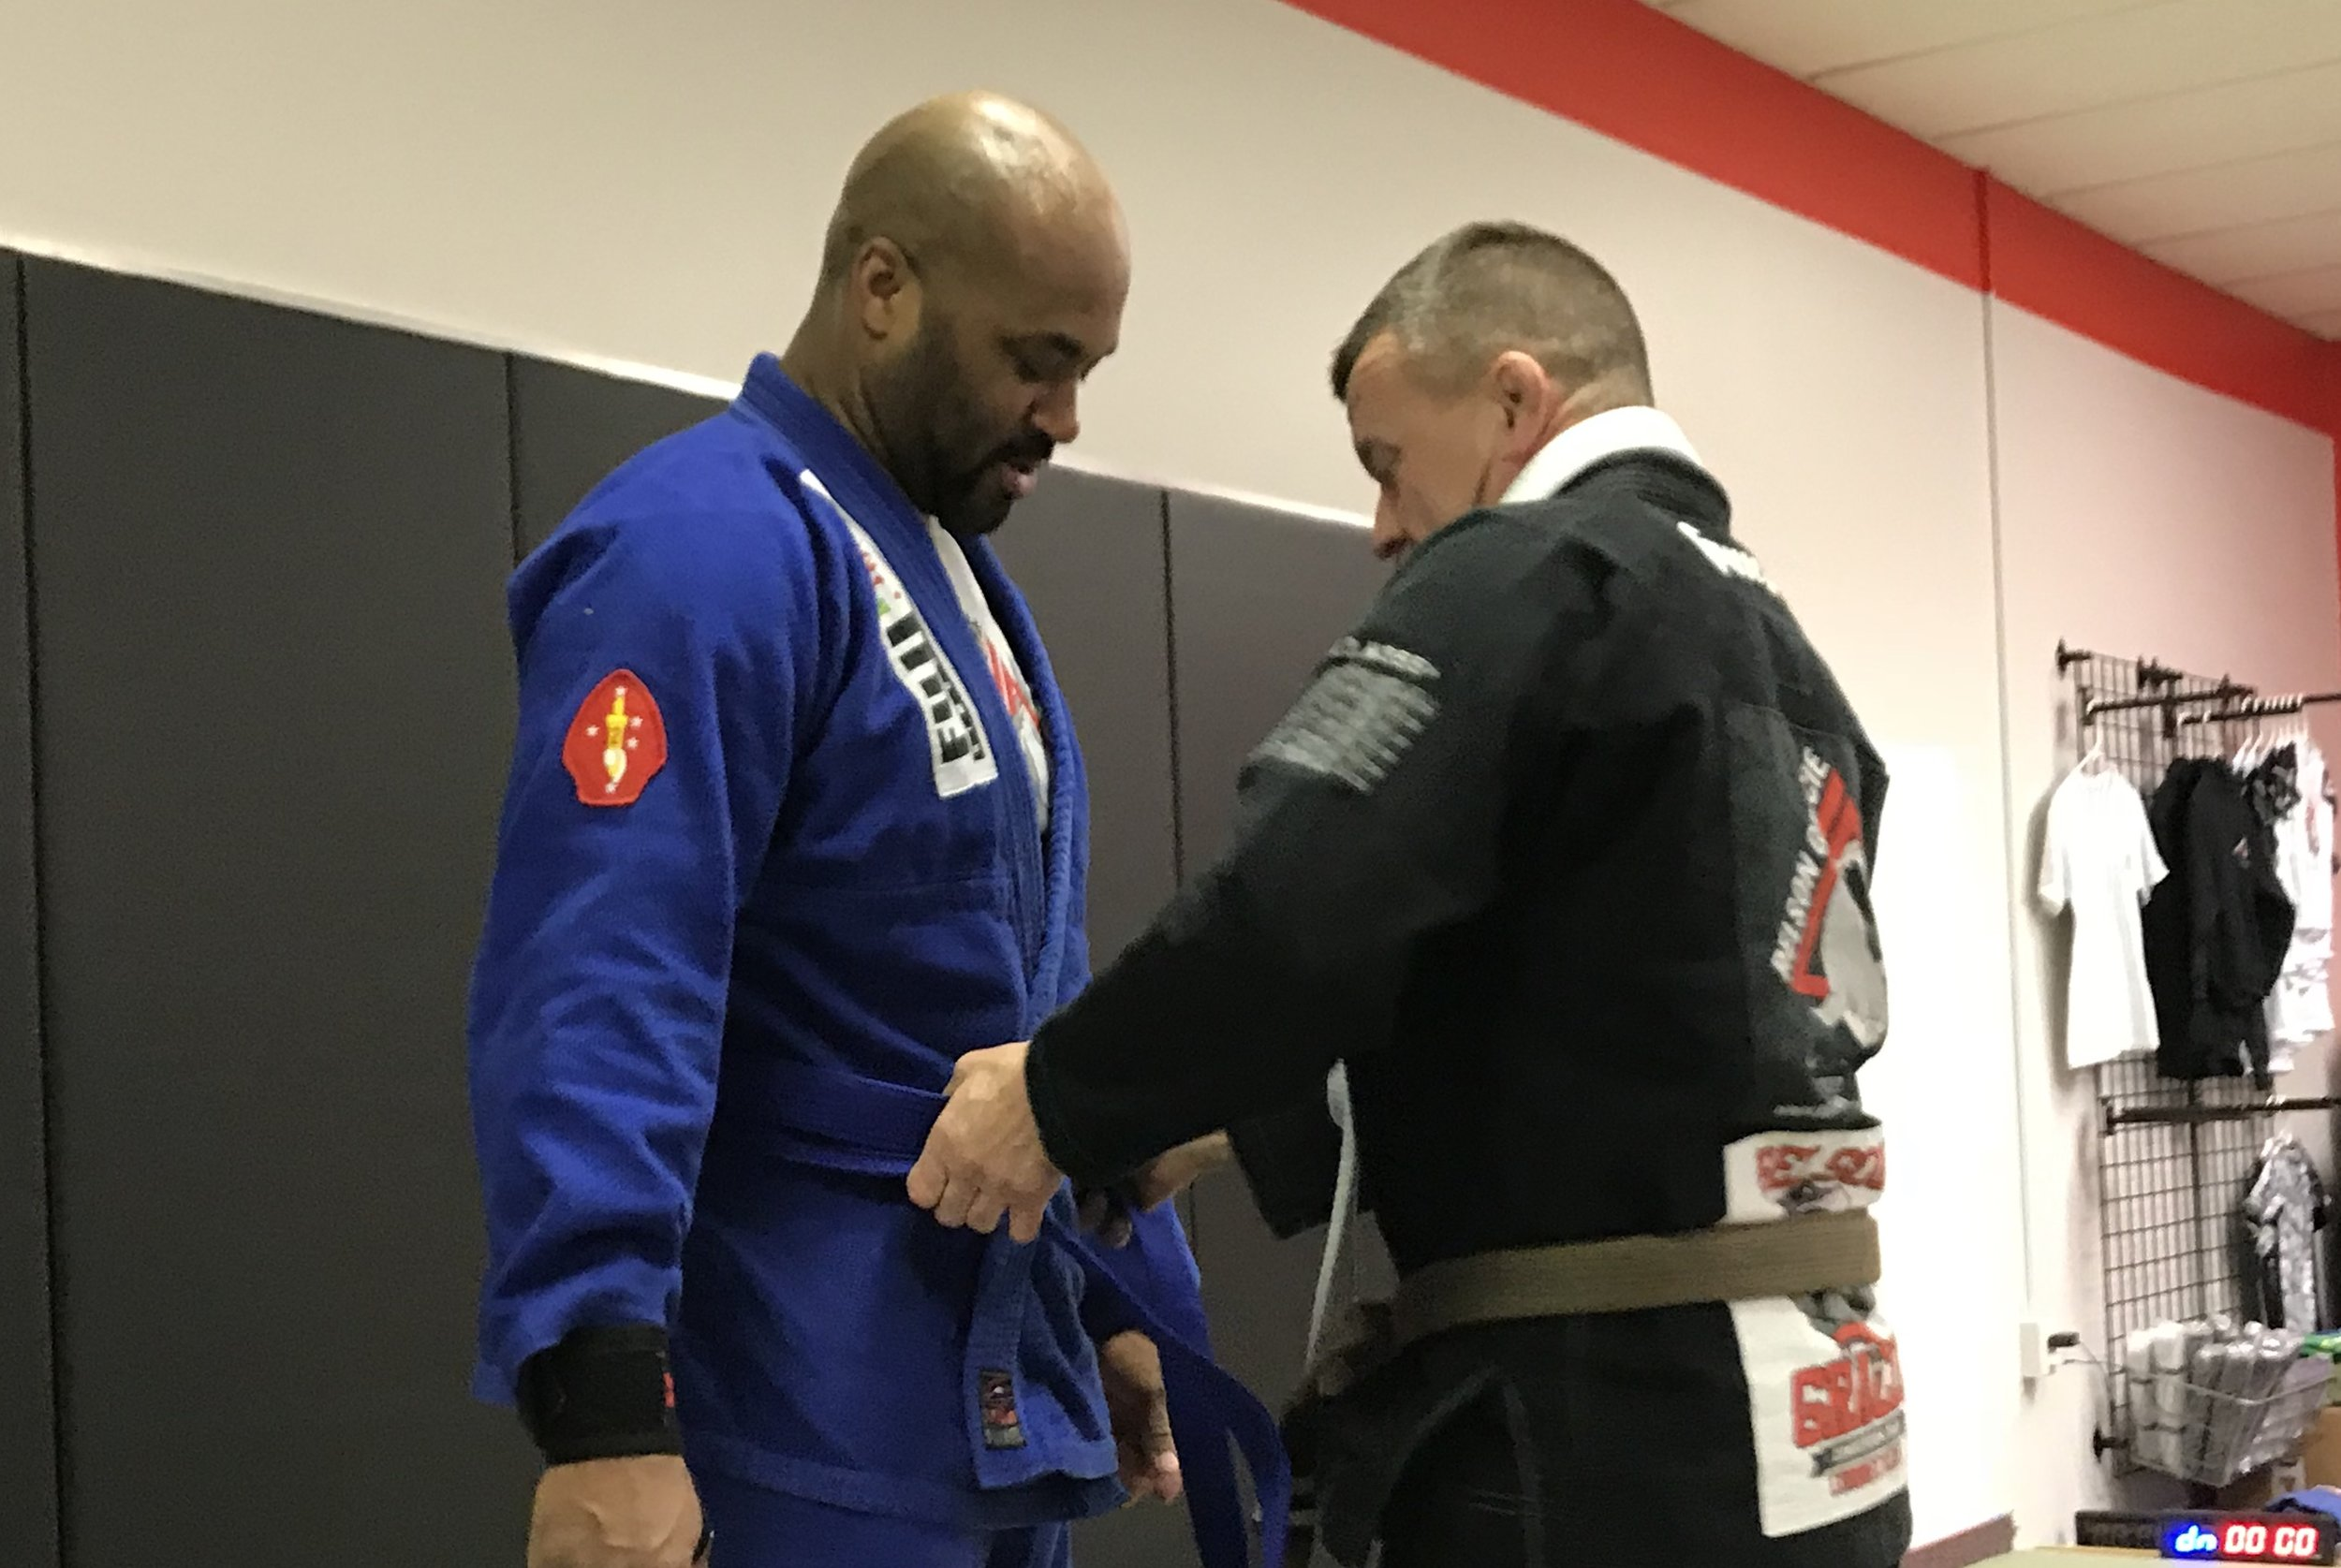 John Trammell gets his blue belt!